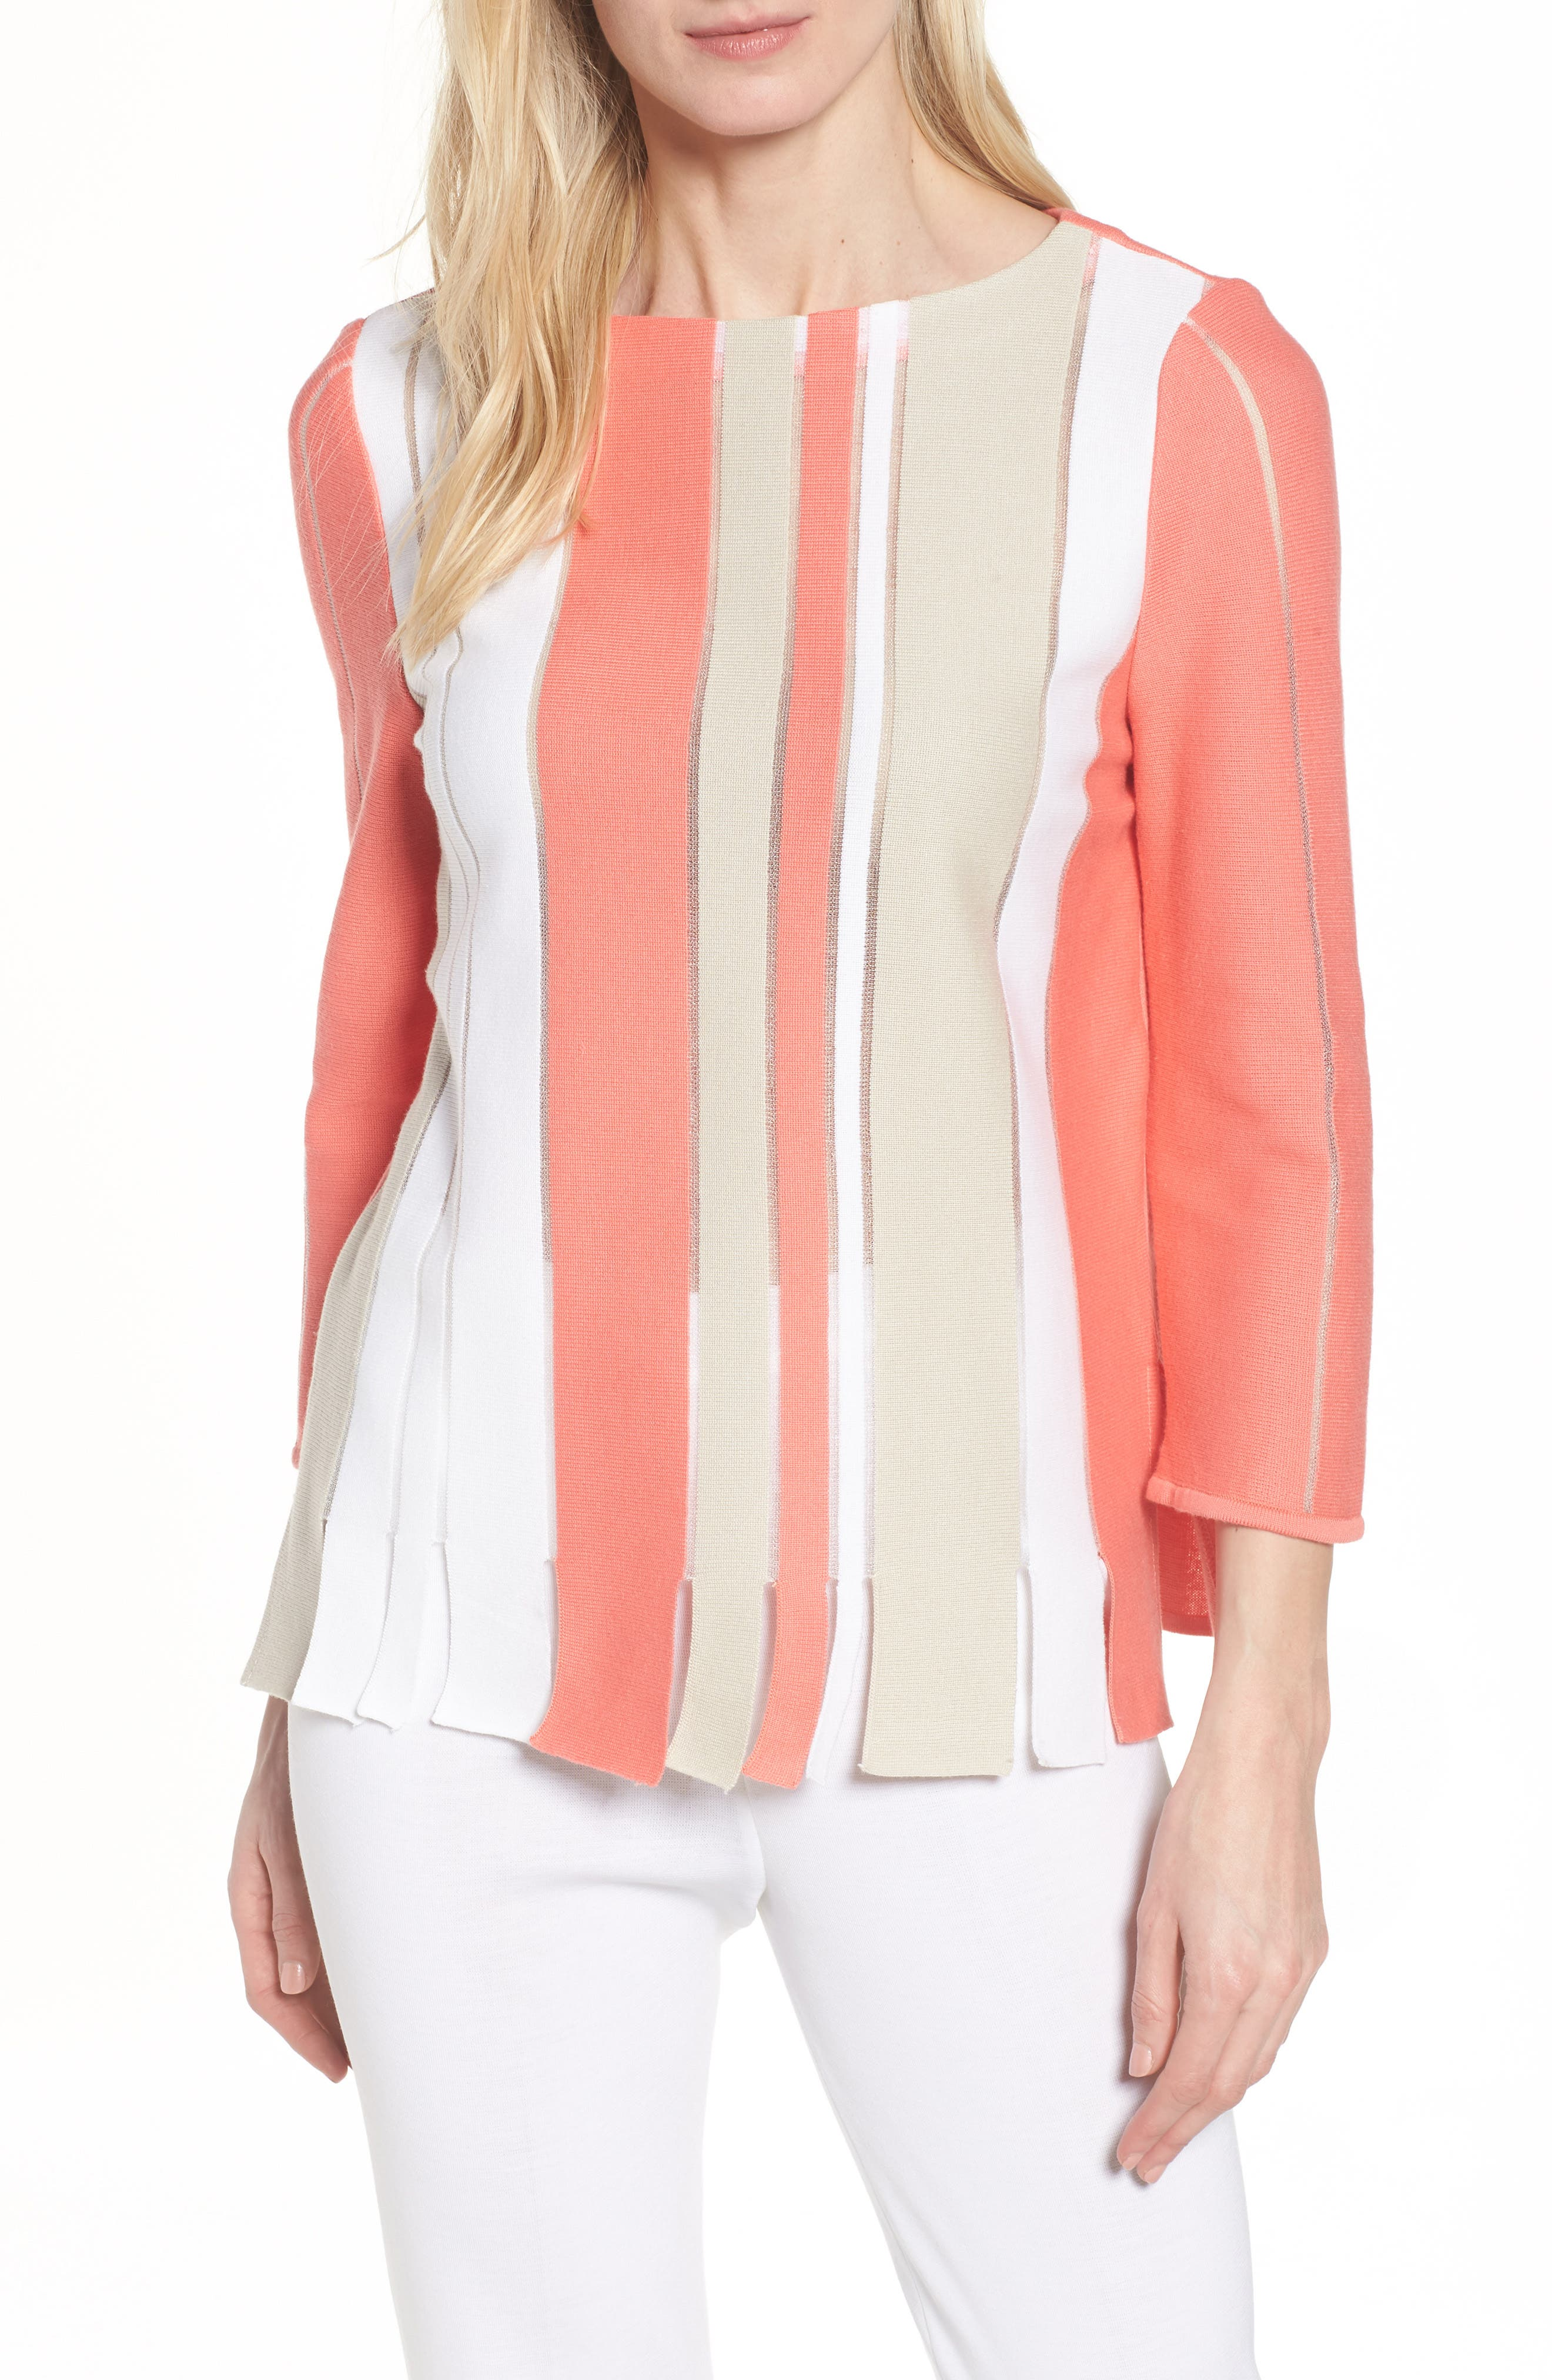 Stripe Cotton Blend Sweater,                             Main thumbnail 1, color,                             Daylily/ Almond Beige/ White